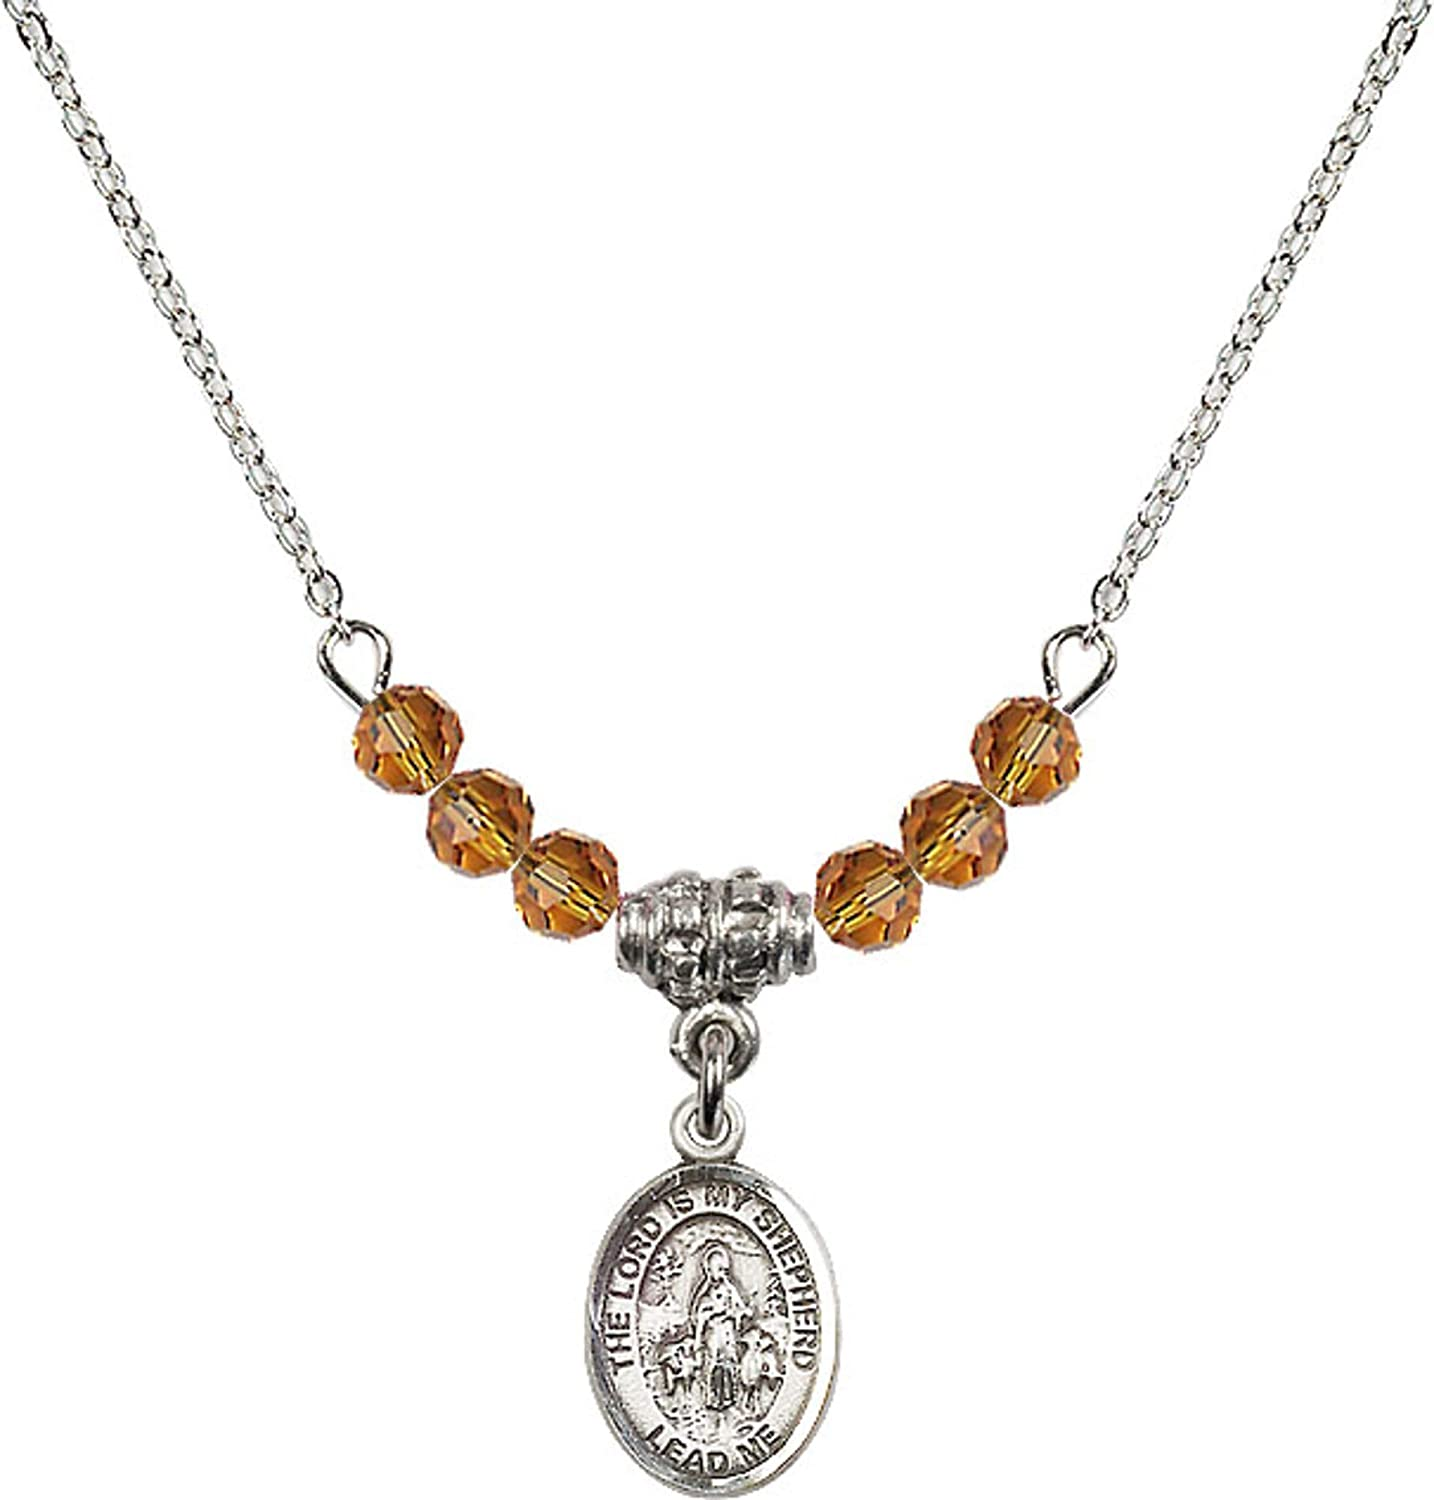 Bonyak Jewelry 18 Inch Rhodium Plated Necklace w// 4mm Yellow November Birth Month Stone Beads and Lord is My Shepherd Charm